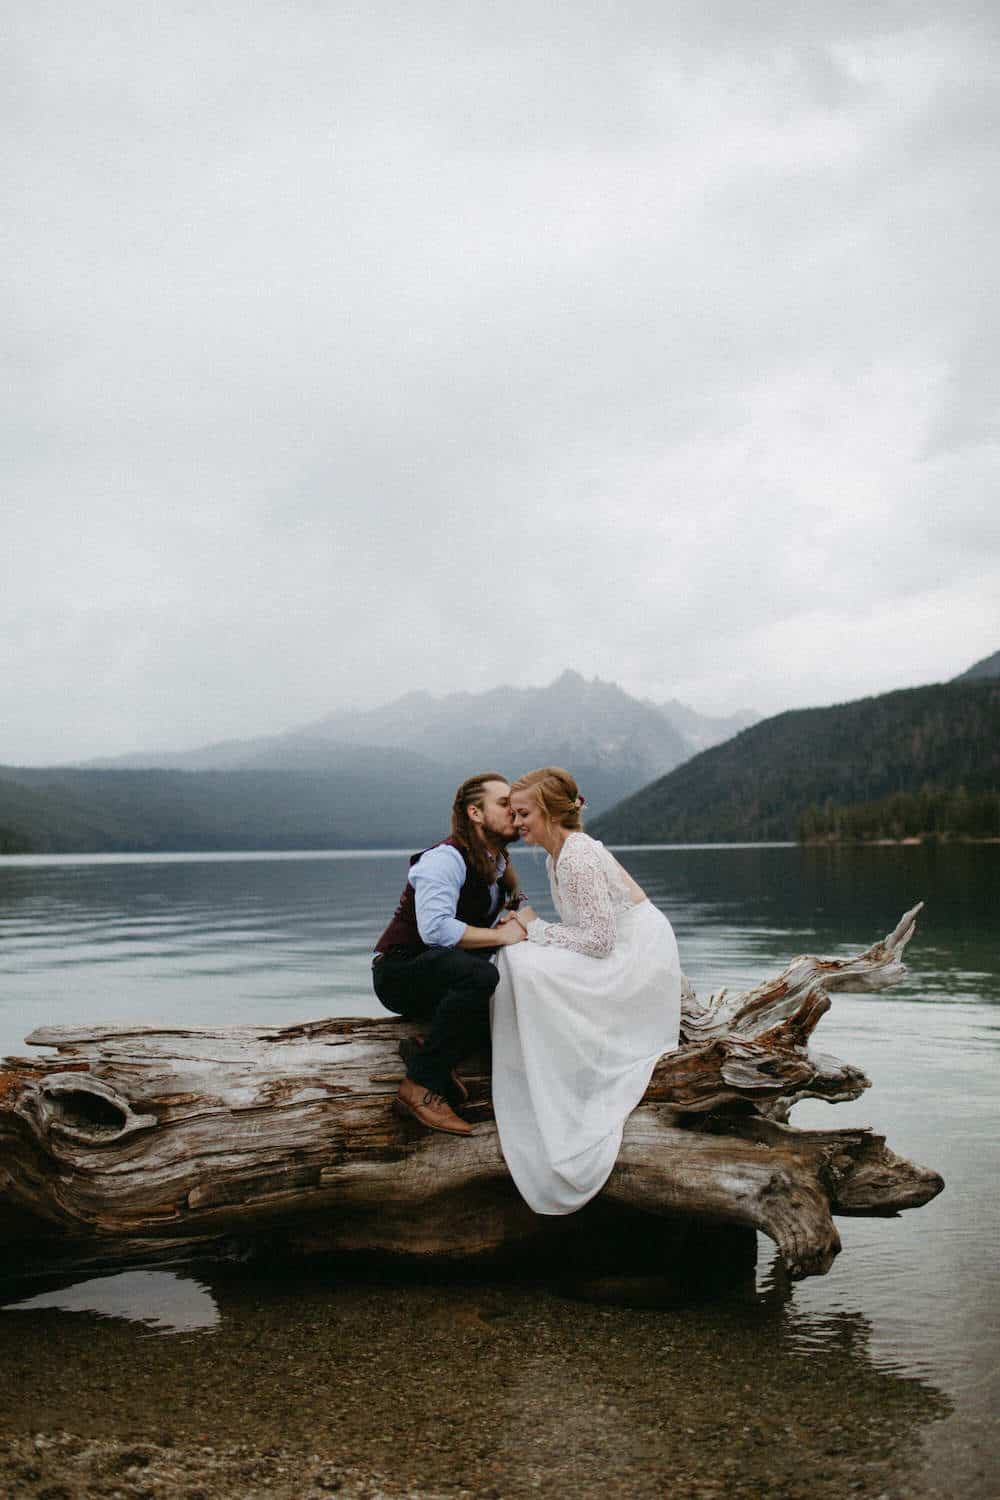 Idaho Redfish Lake Elopement Caitlin and Brandon's Wedding Christine Marie Photography Simply Eloped 2